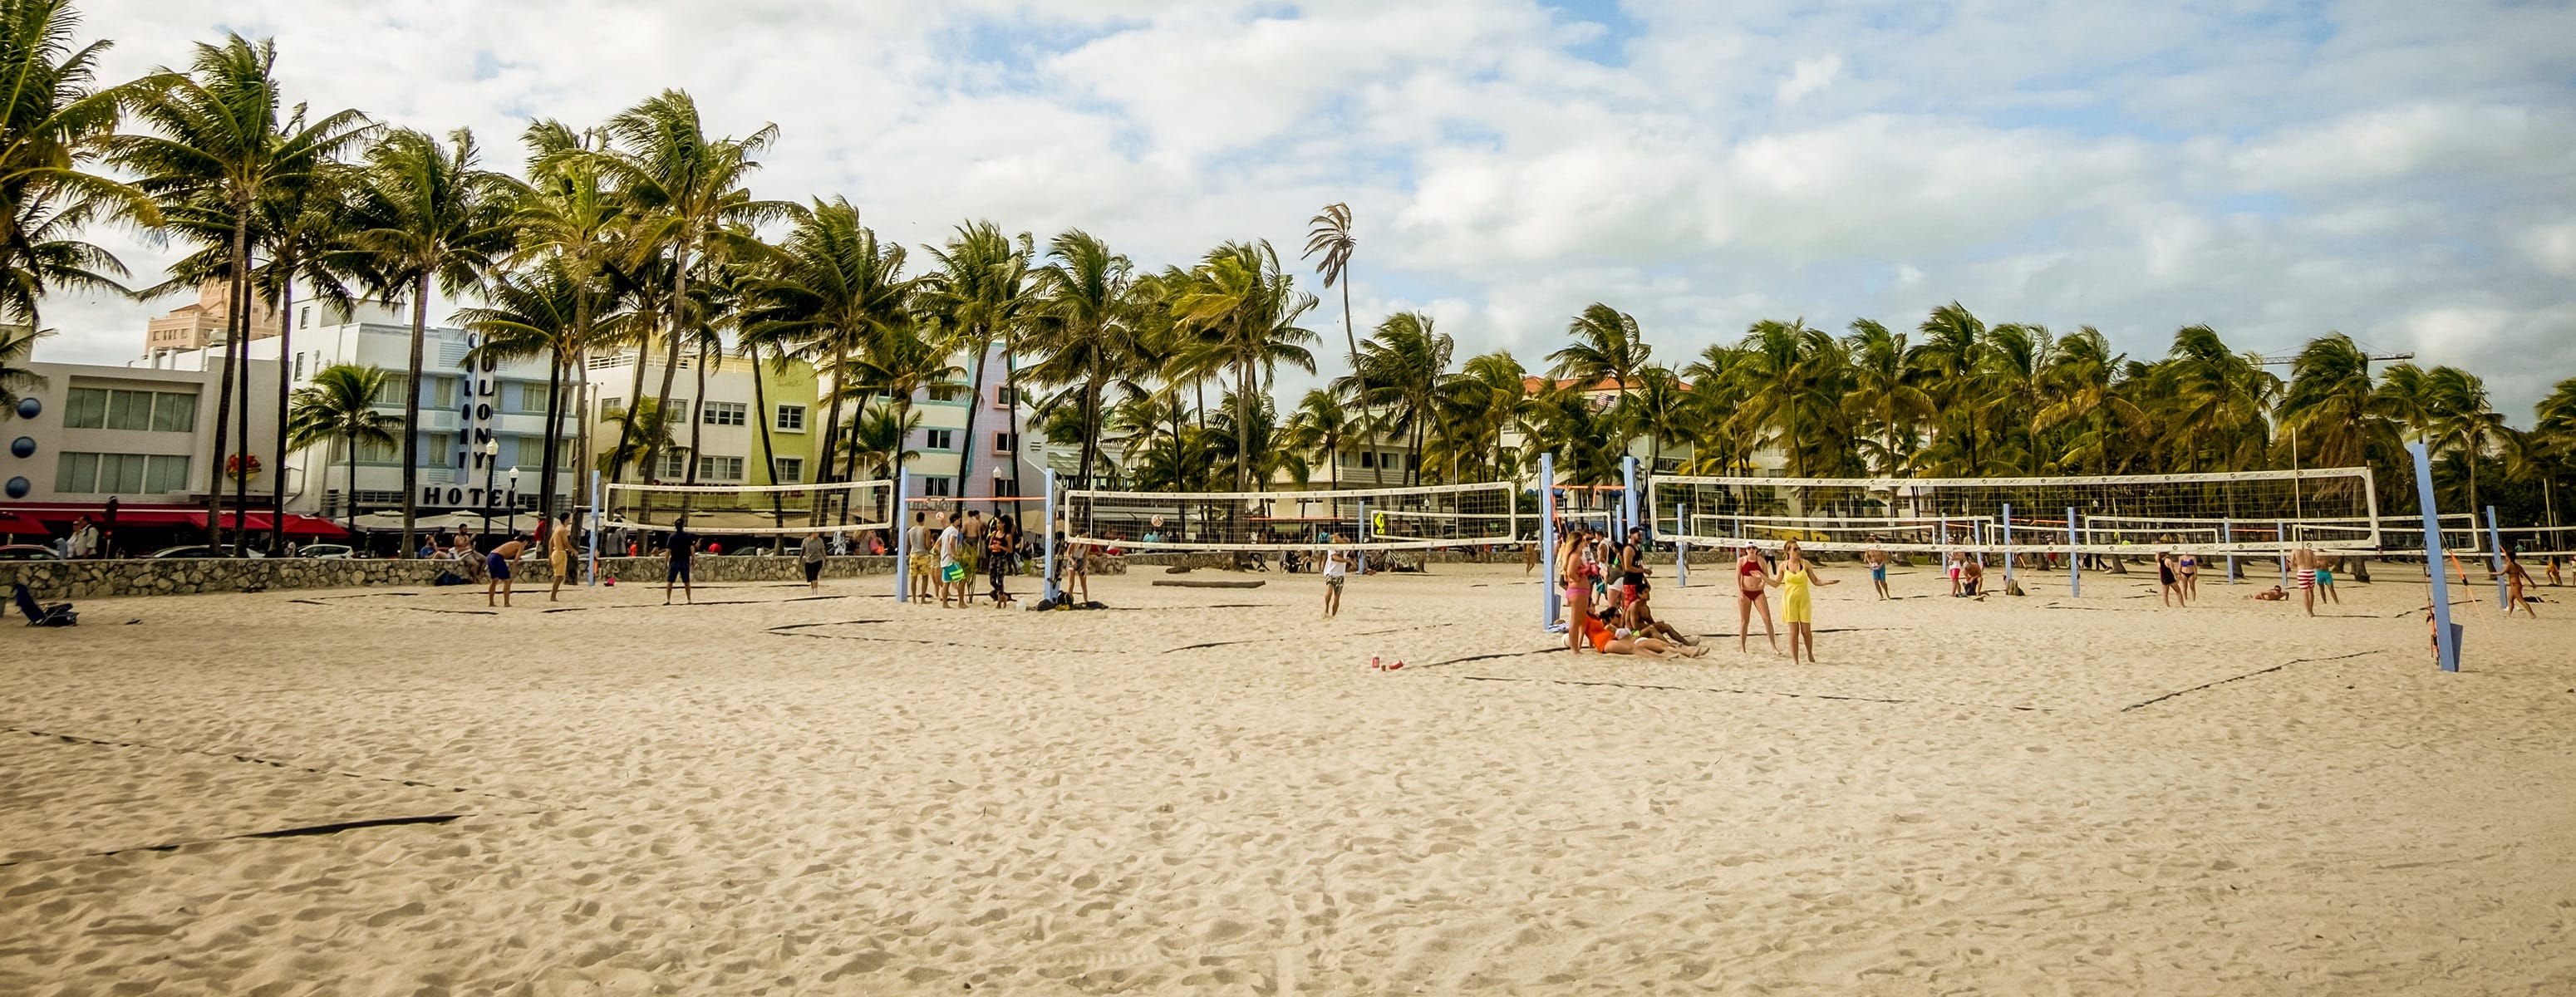 Vacation rentals in Miami Beach - South Beach